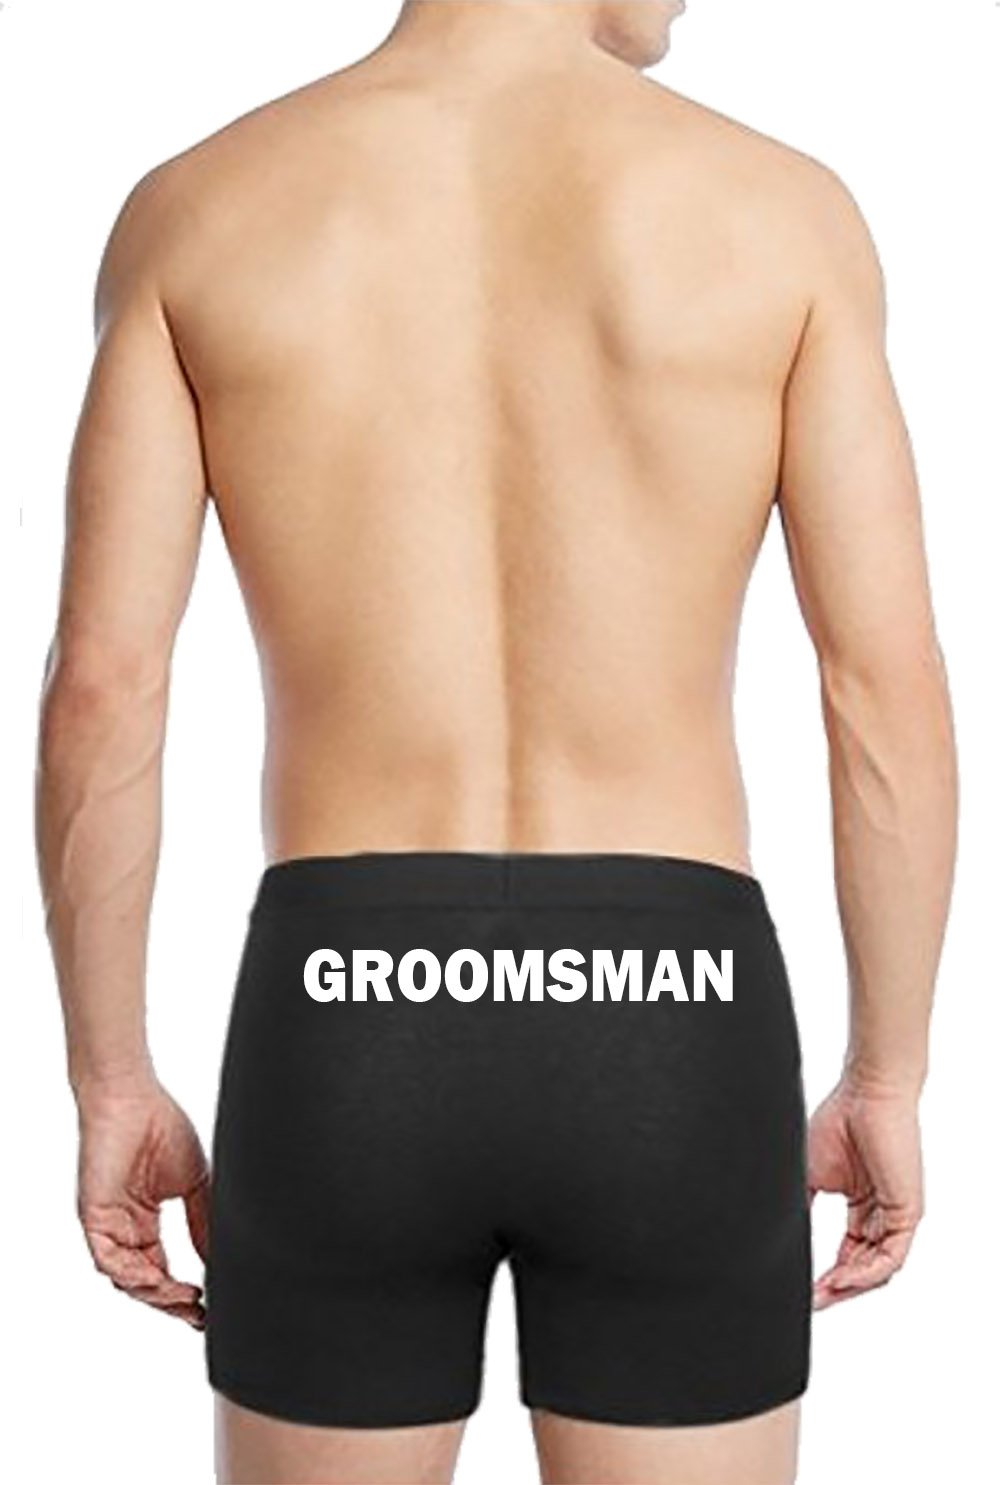 Boxer Briefs for Men Groomsman Wedding Underwear Bachelor Party Gifts Black Small